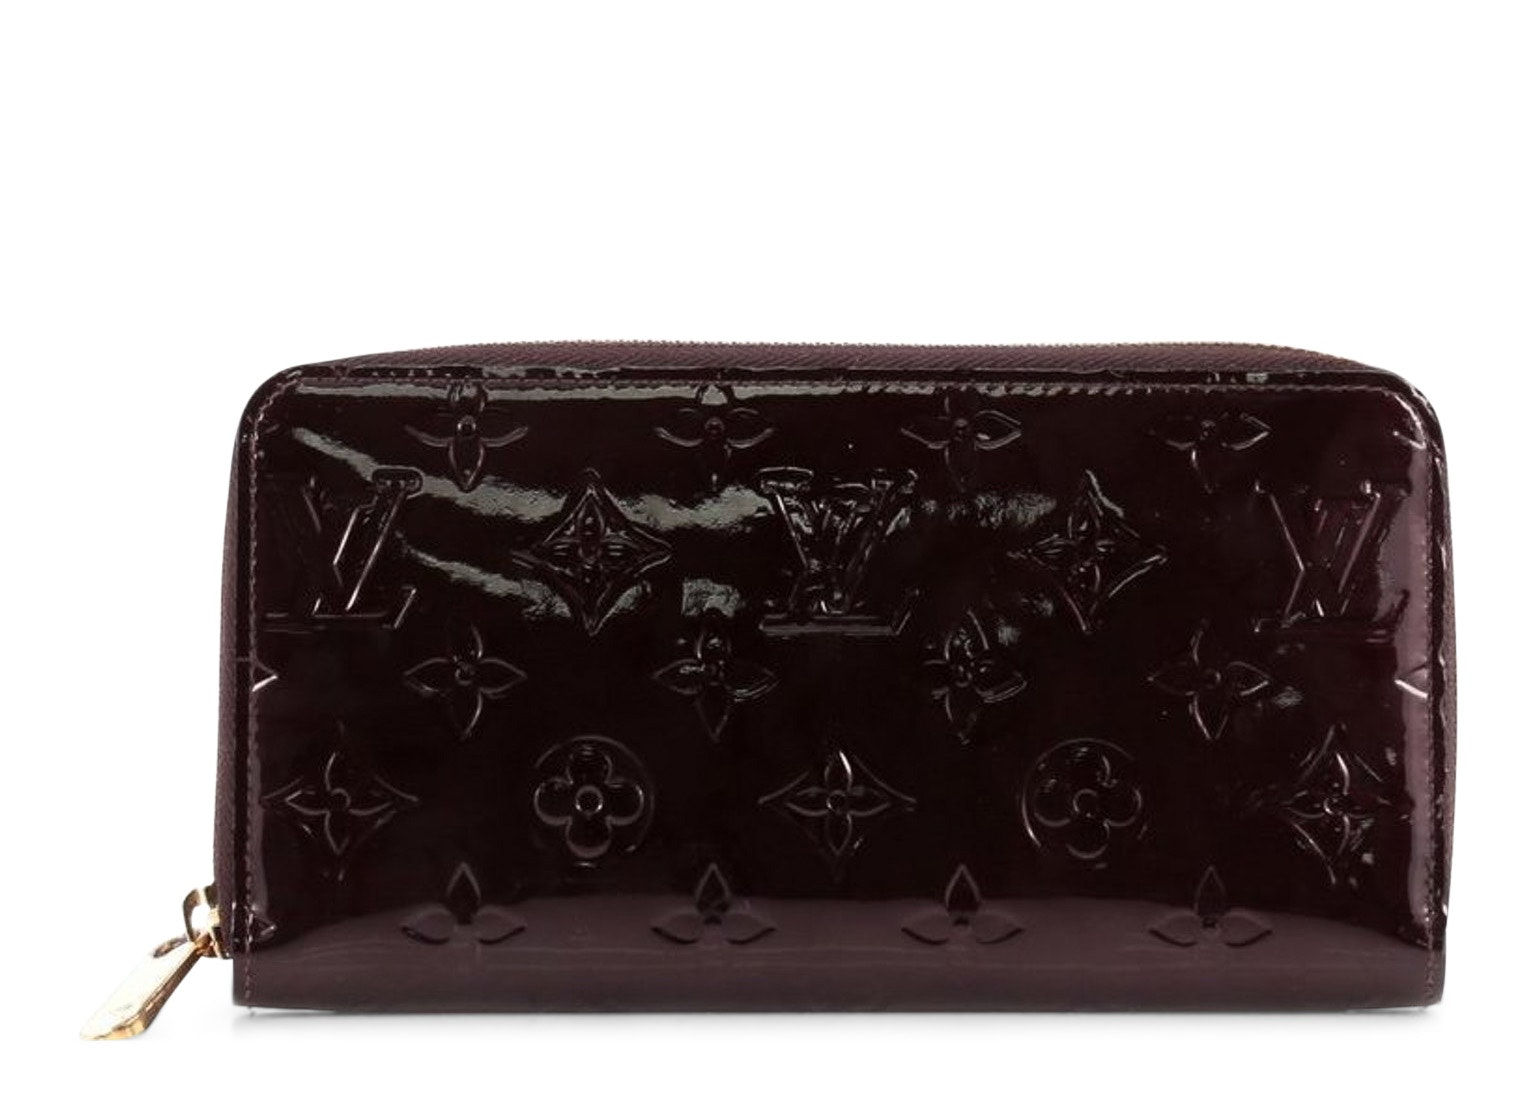 Louis Vuitton Zippy Monogram Vernis Amarante